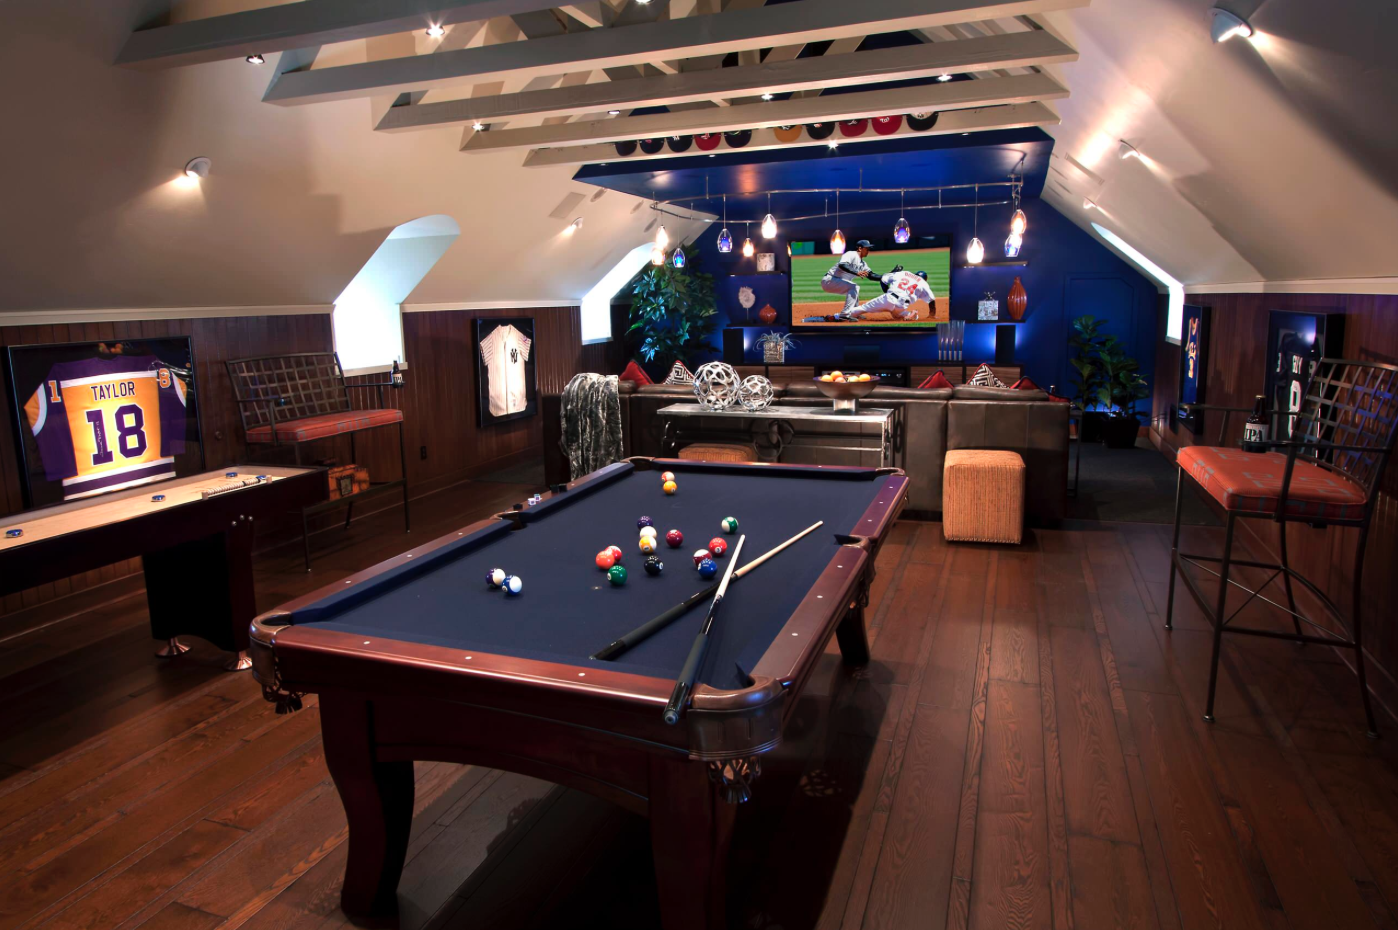 Best man cave installation ideas 23 - Sports Room Sophistication Man Cave